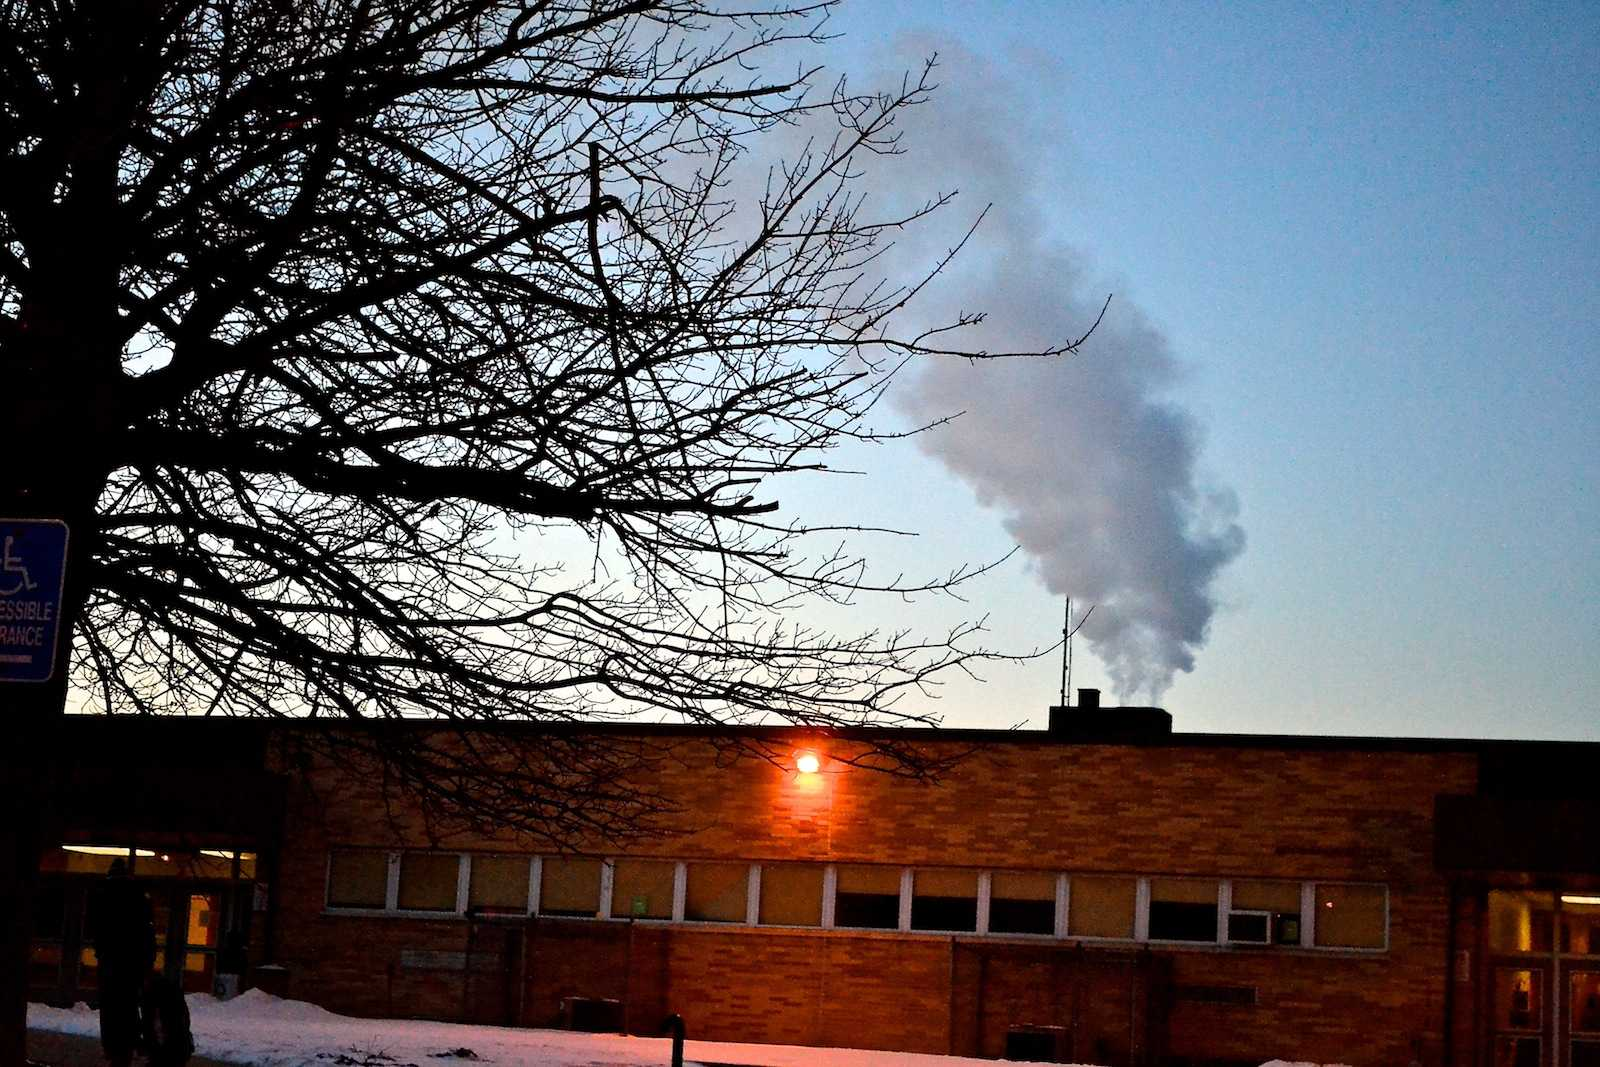 On cold mornings, dark grey smoke, produced by the burning of fossil fuels, can be seen rising above East's roof.